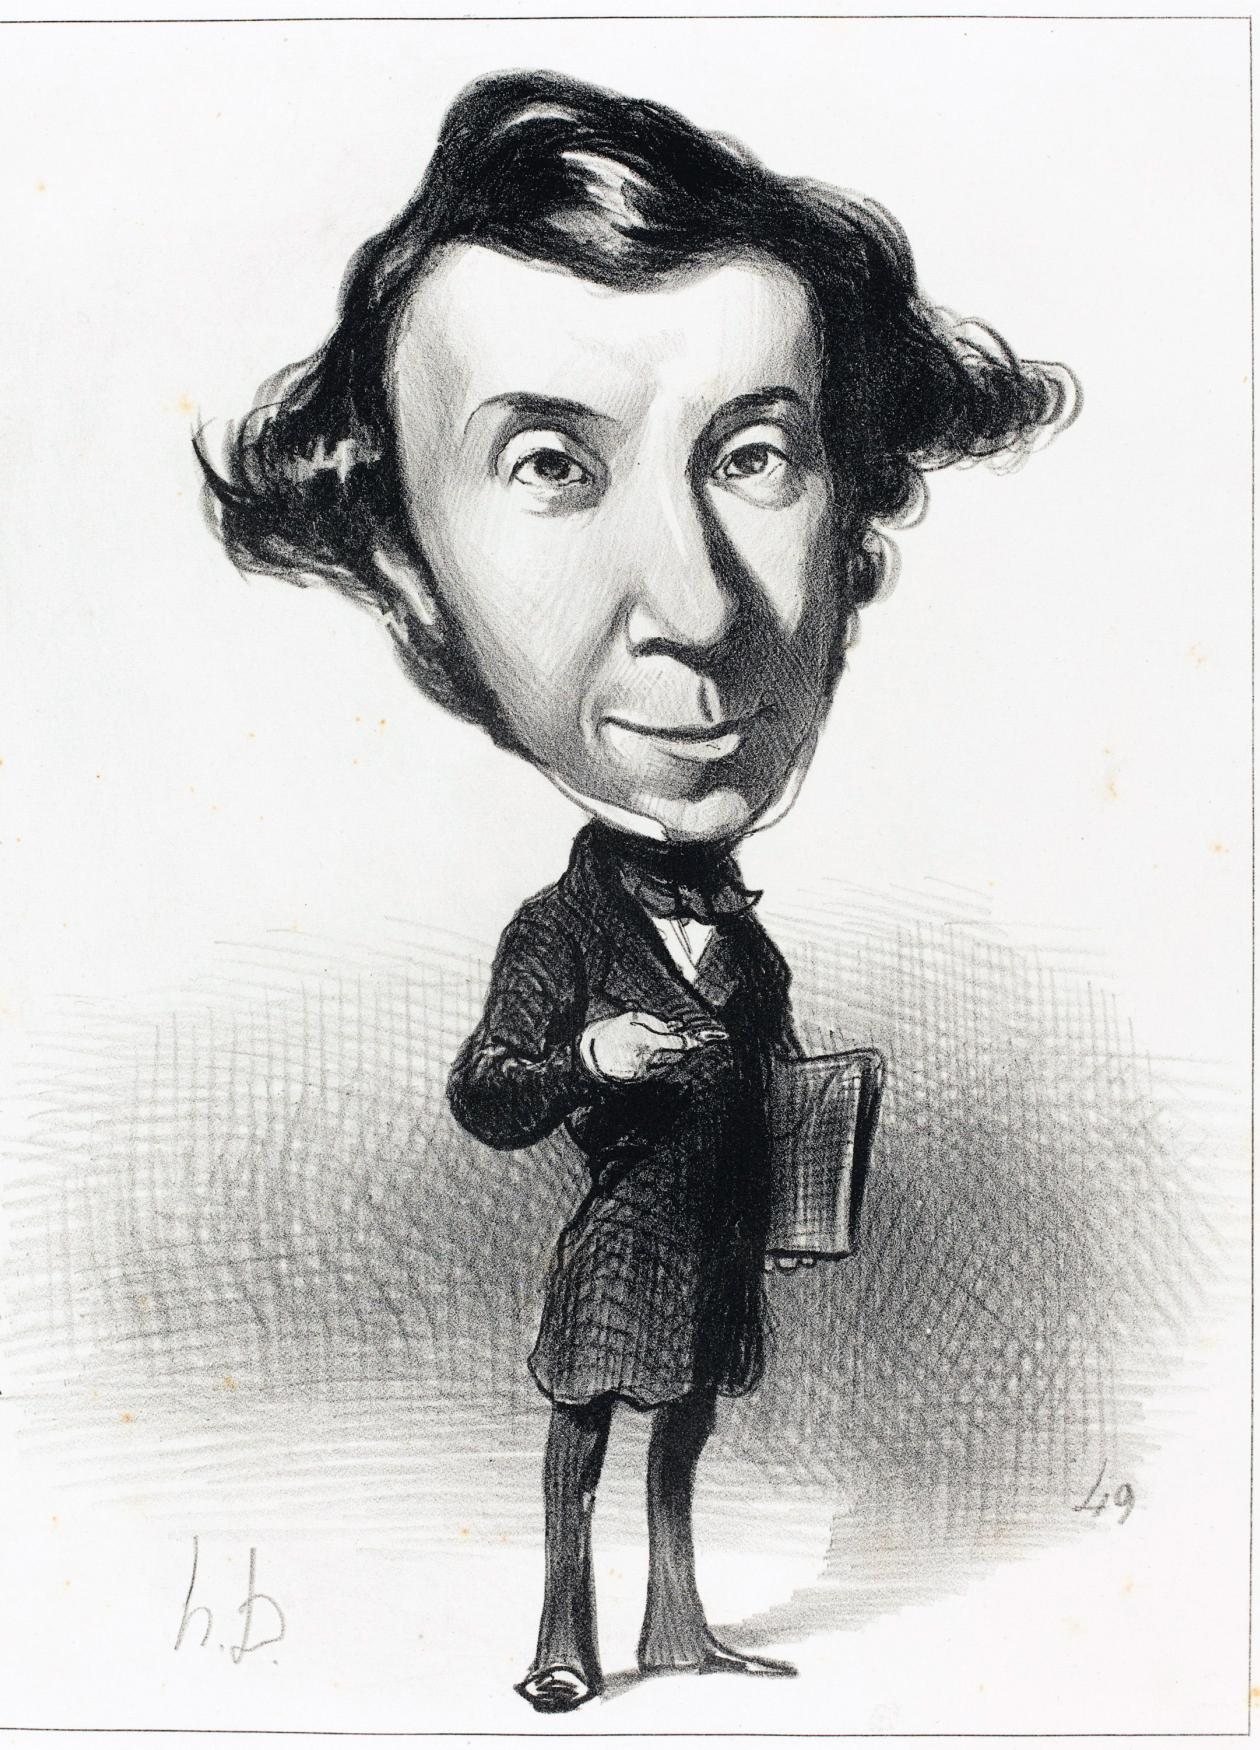 Toqueville with an extra large head and tiny, skinny body in a suit